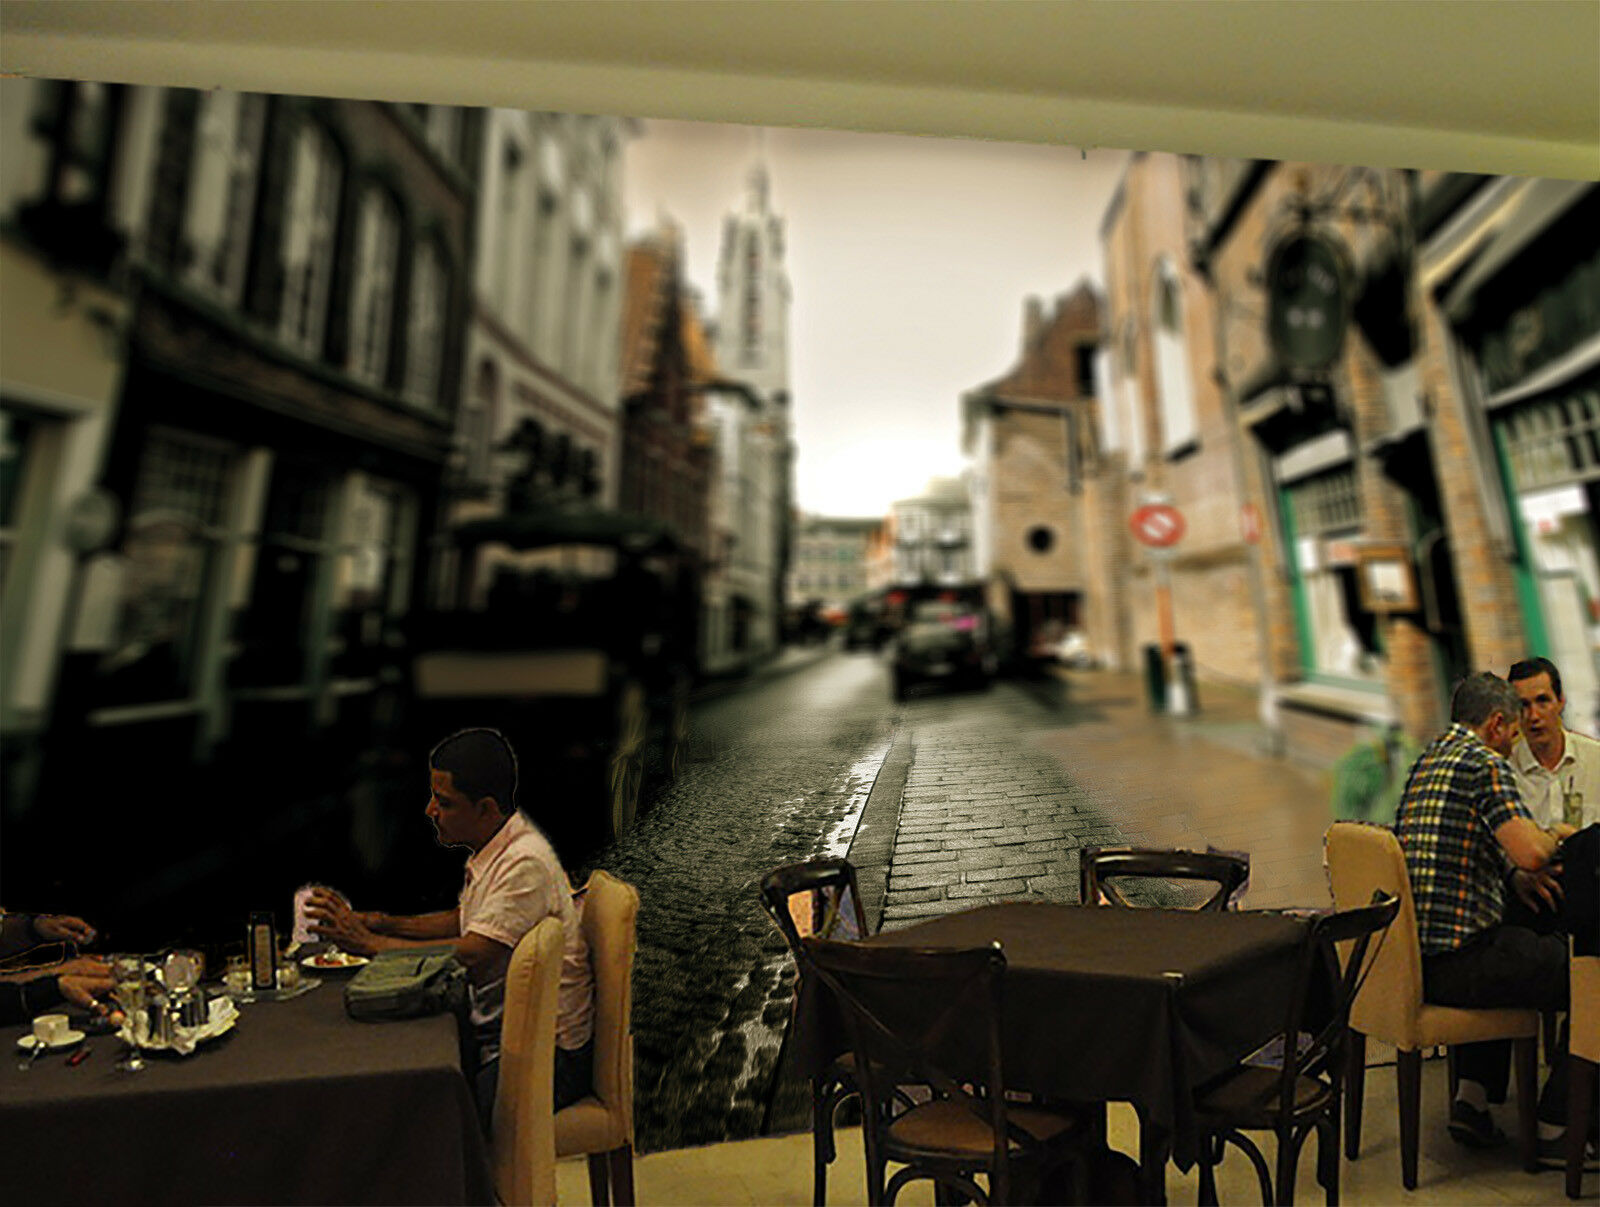 3D Street Alley Car 56 Wall Paper Wall Print Decal Wall Deco Indoor Mural Summer